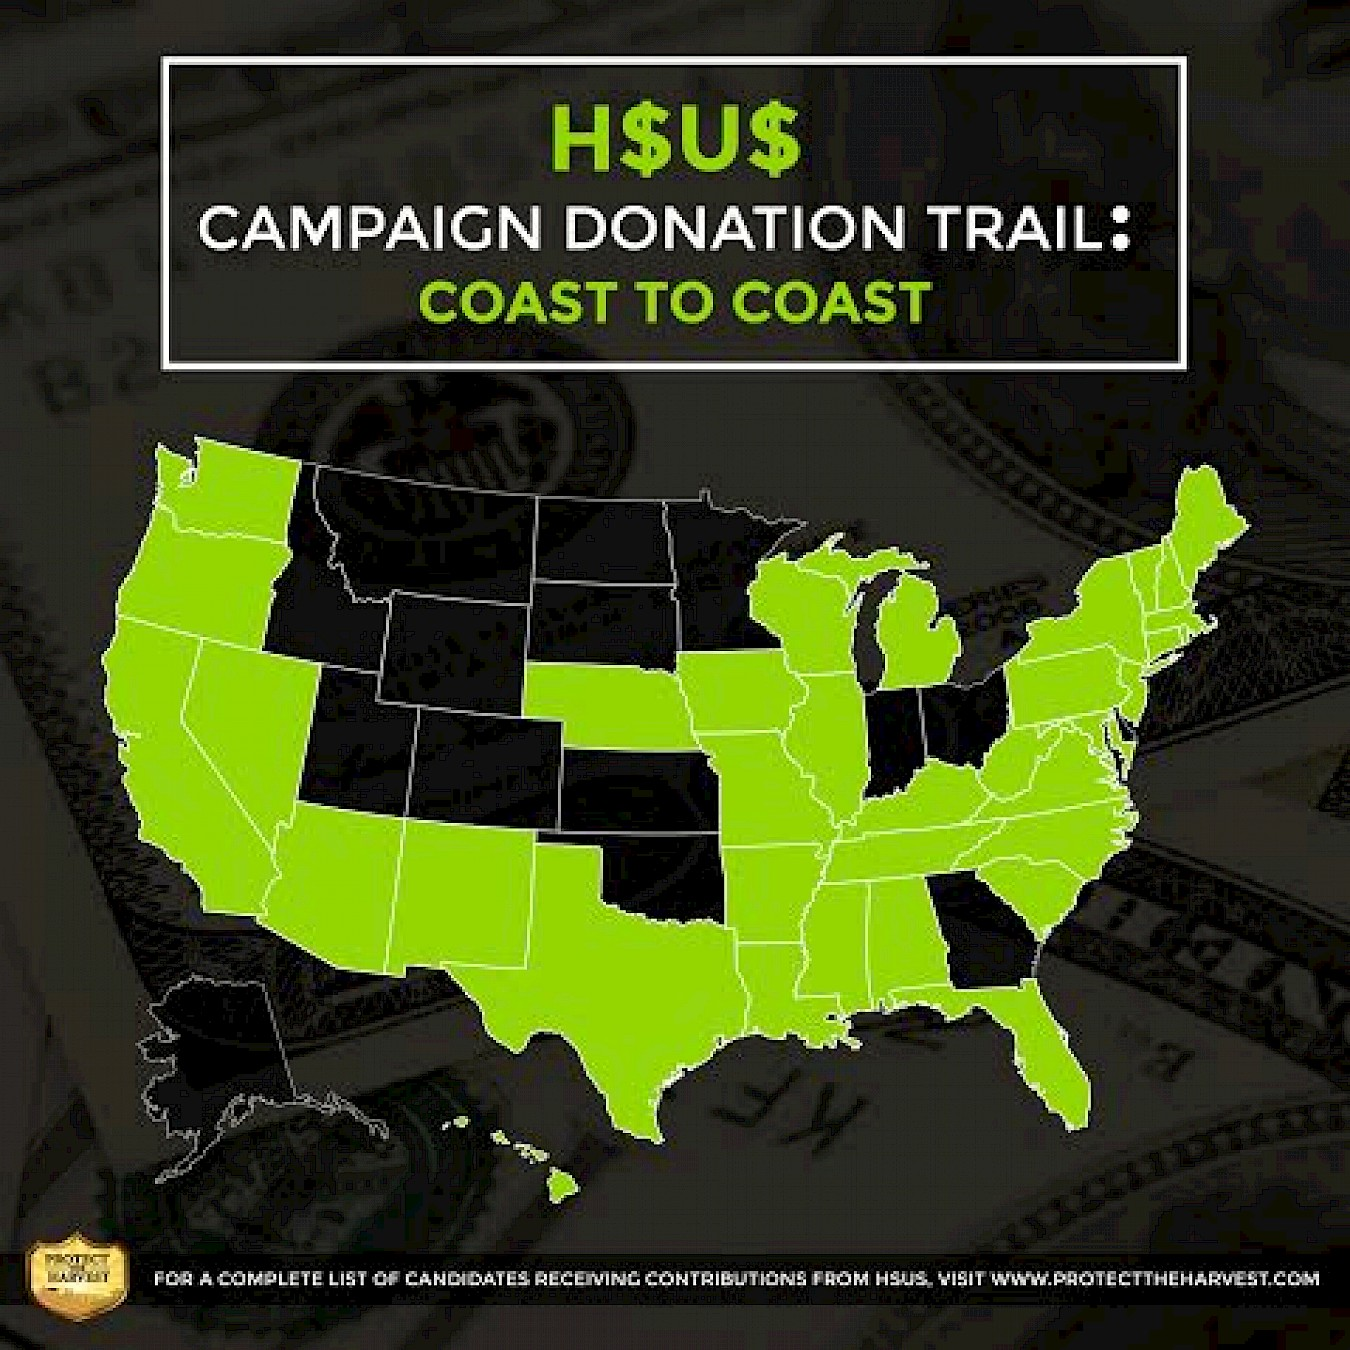 HSUS Campaign Donation Trail: Coast to Coast